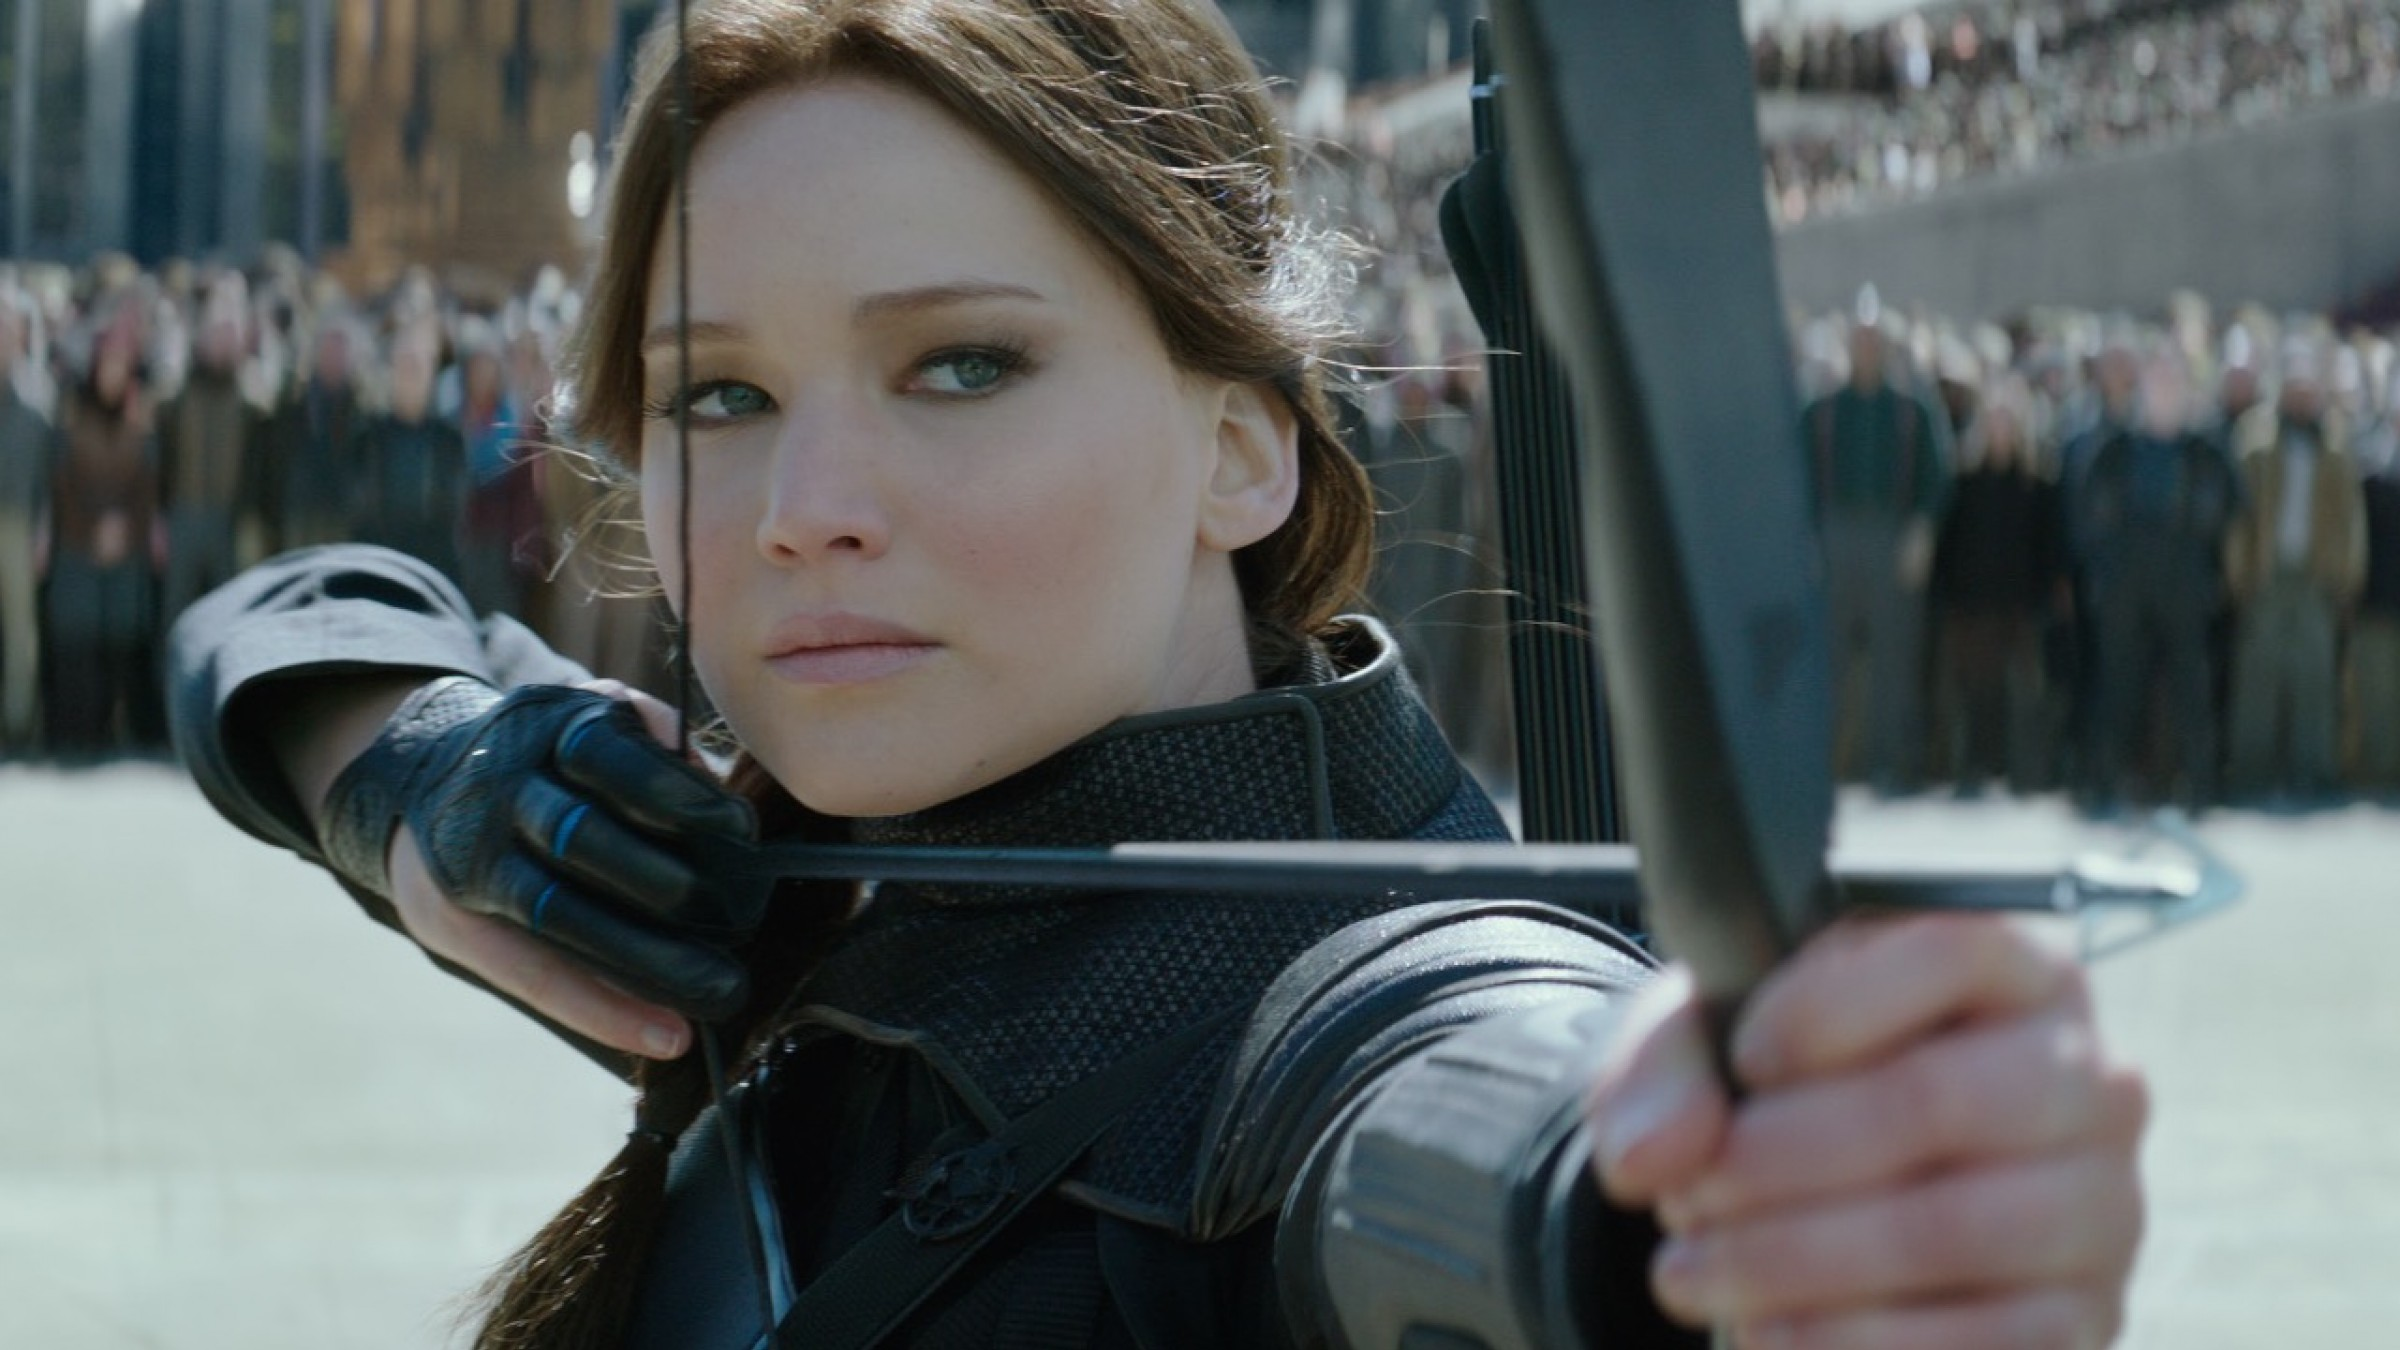 Breaking Down the Sound Design of 'The Hunger Games: Mockingjay - Part 2'